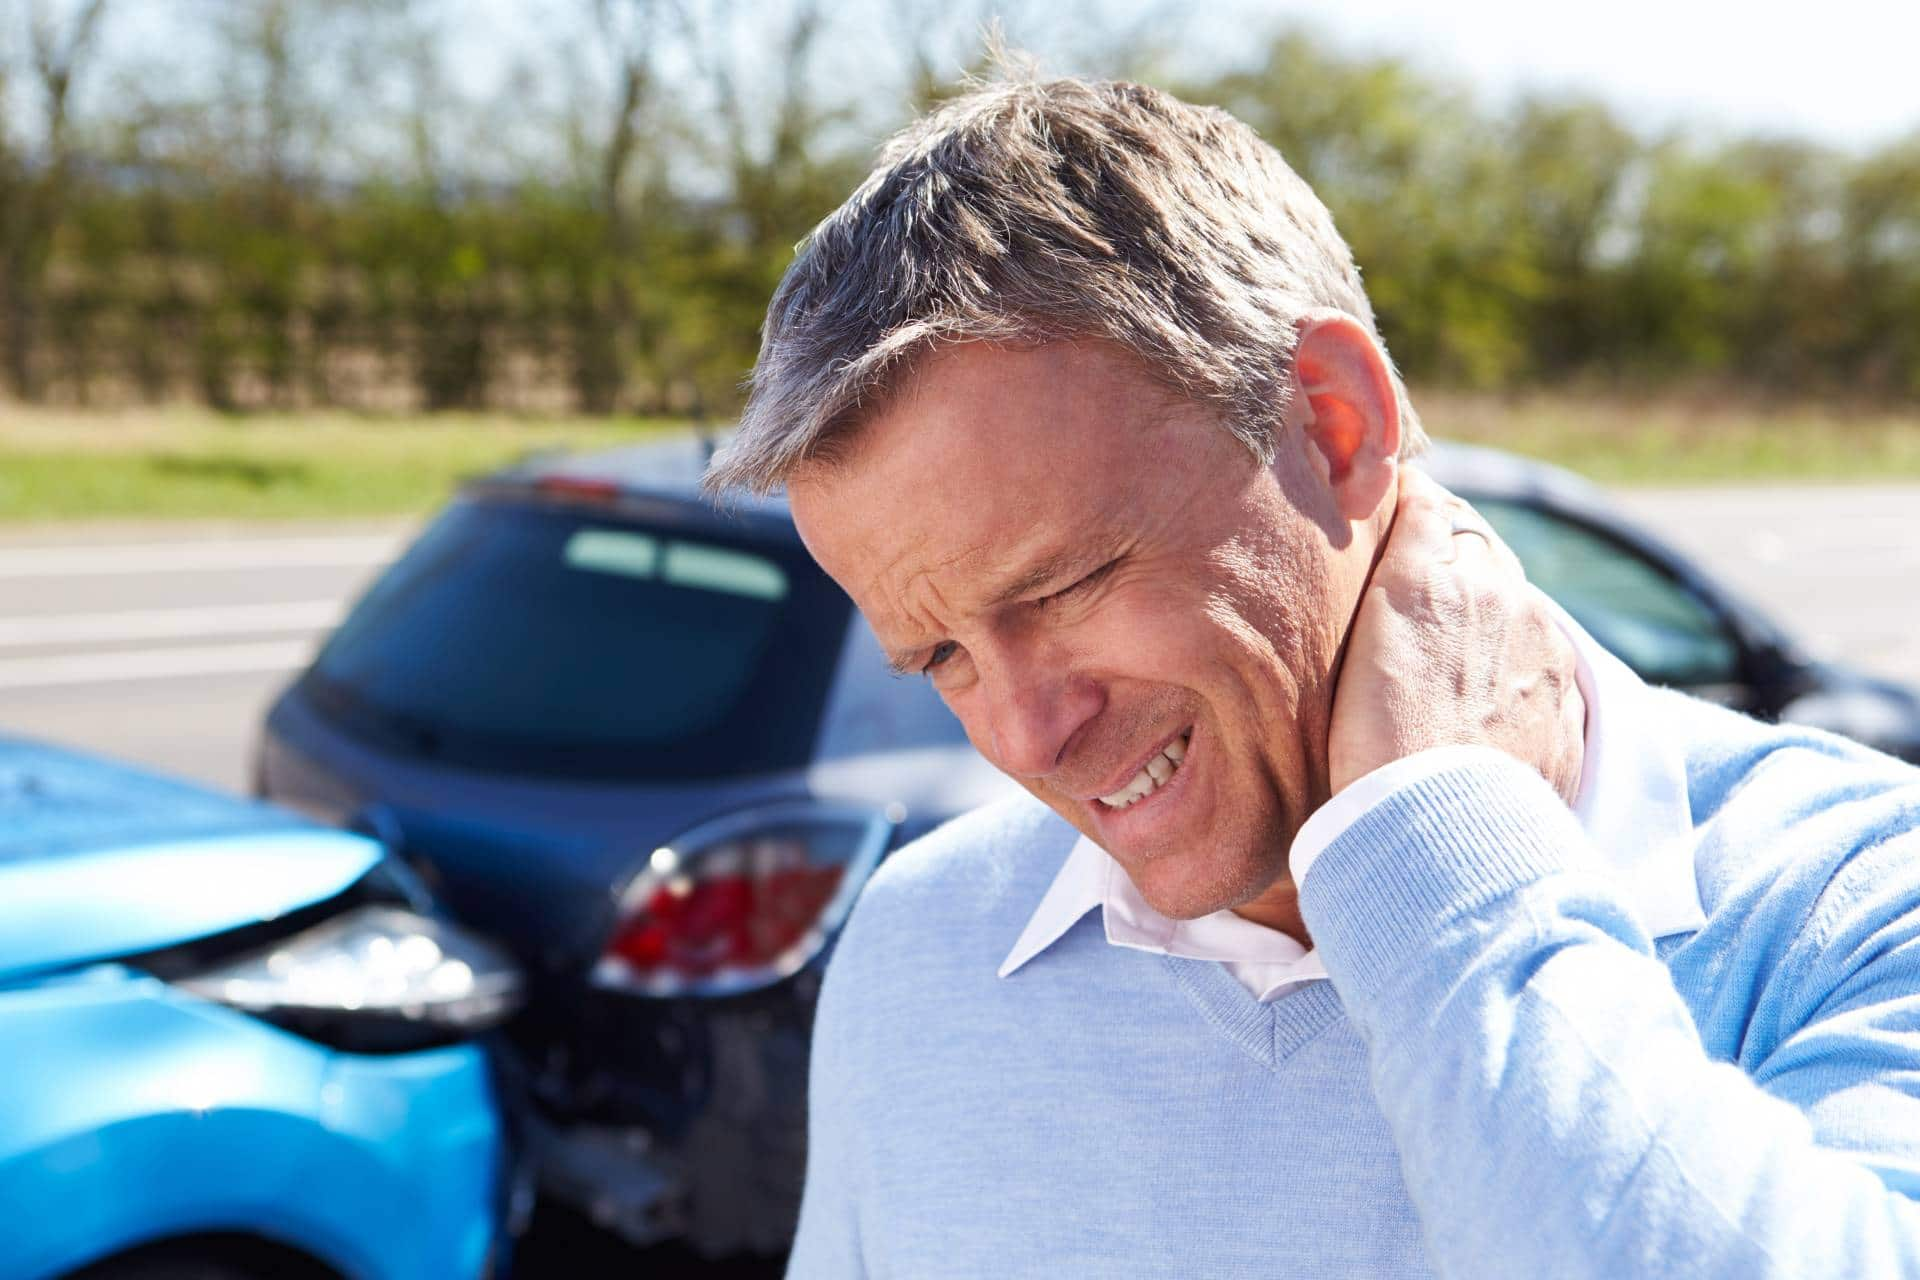 Injured in a car accident? Schedule a free consultation with our personal injury lawyers at the Angell Law Firm in Peachtree City, Georgia